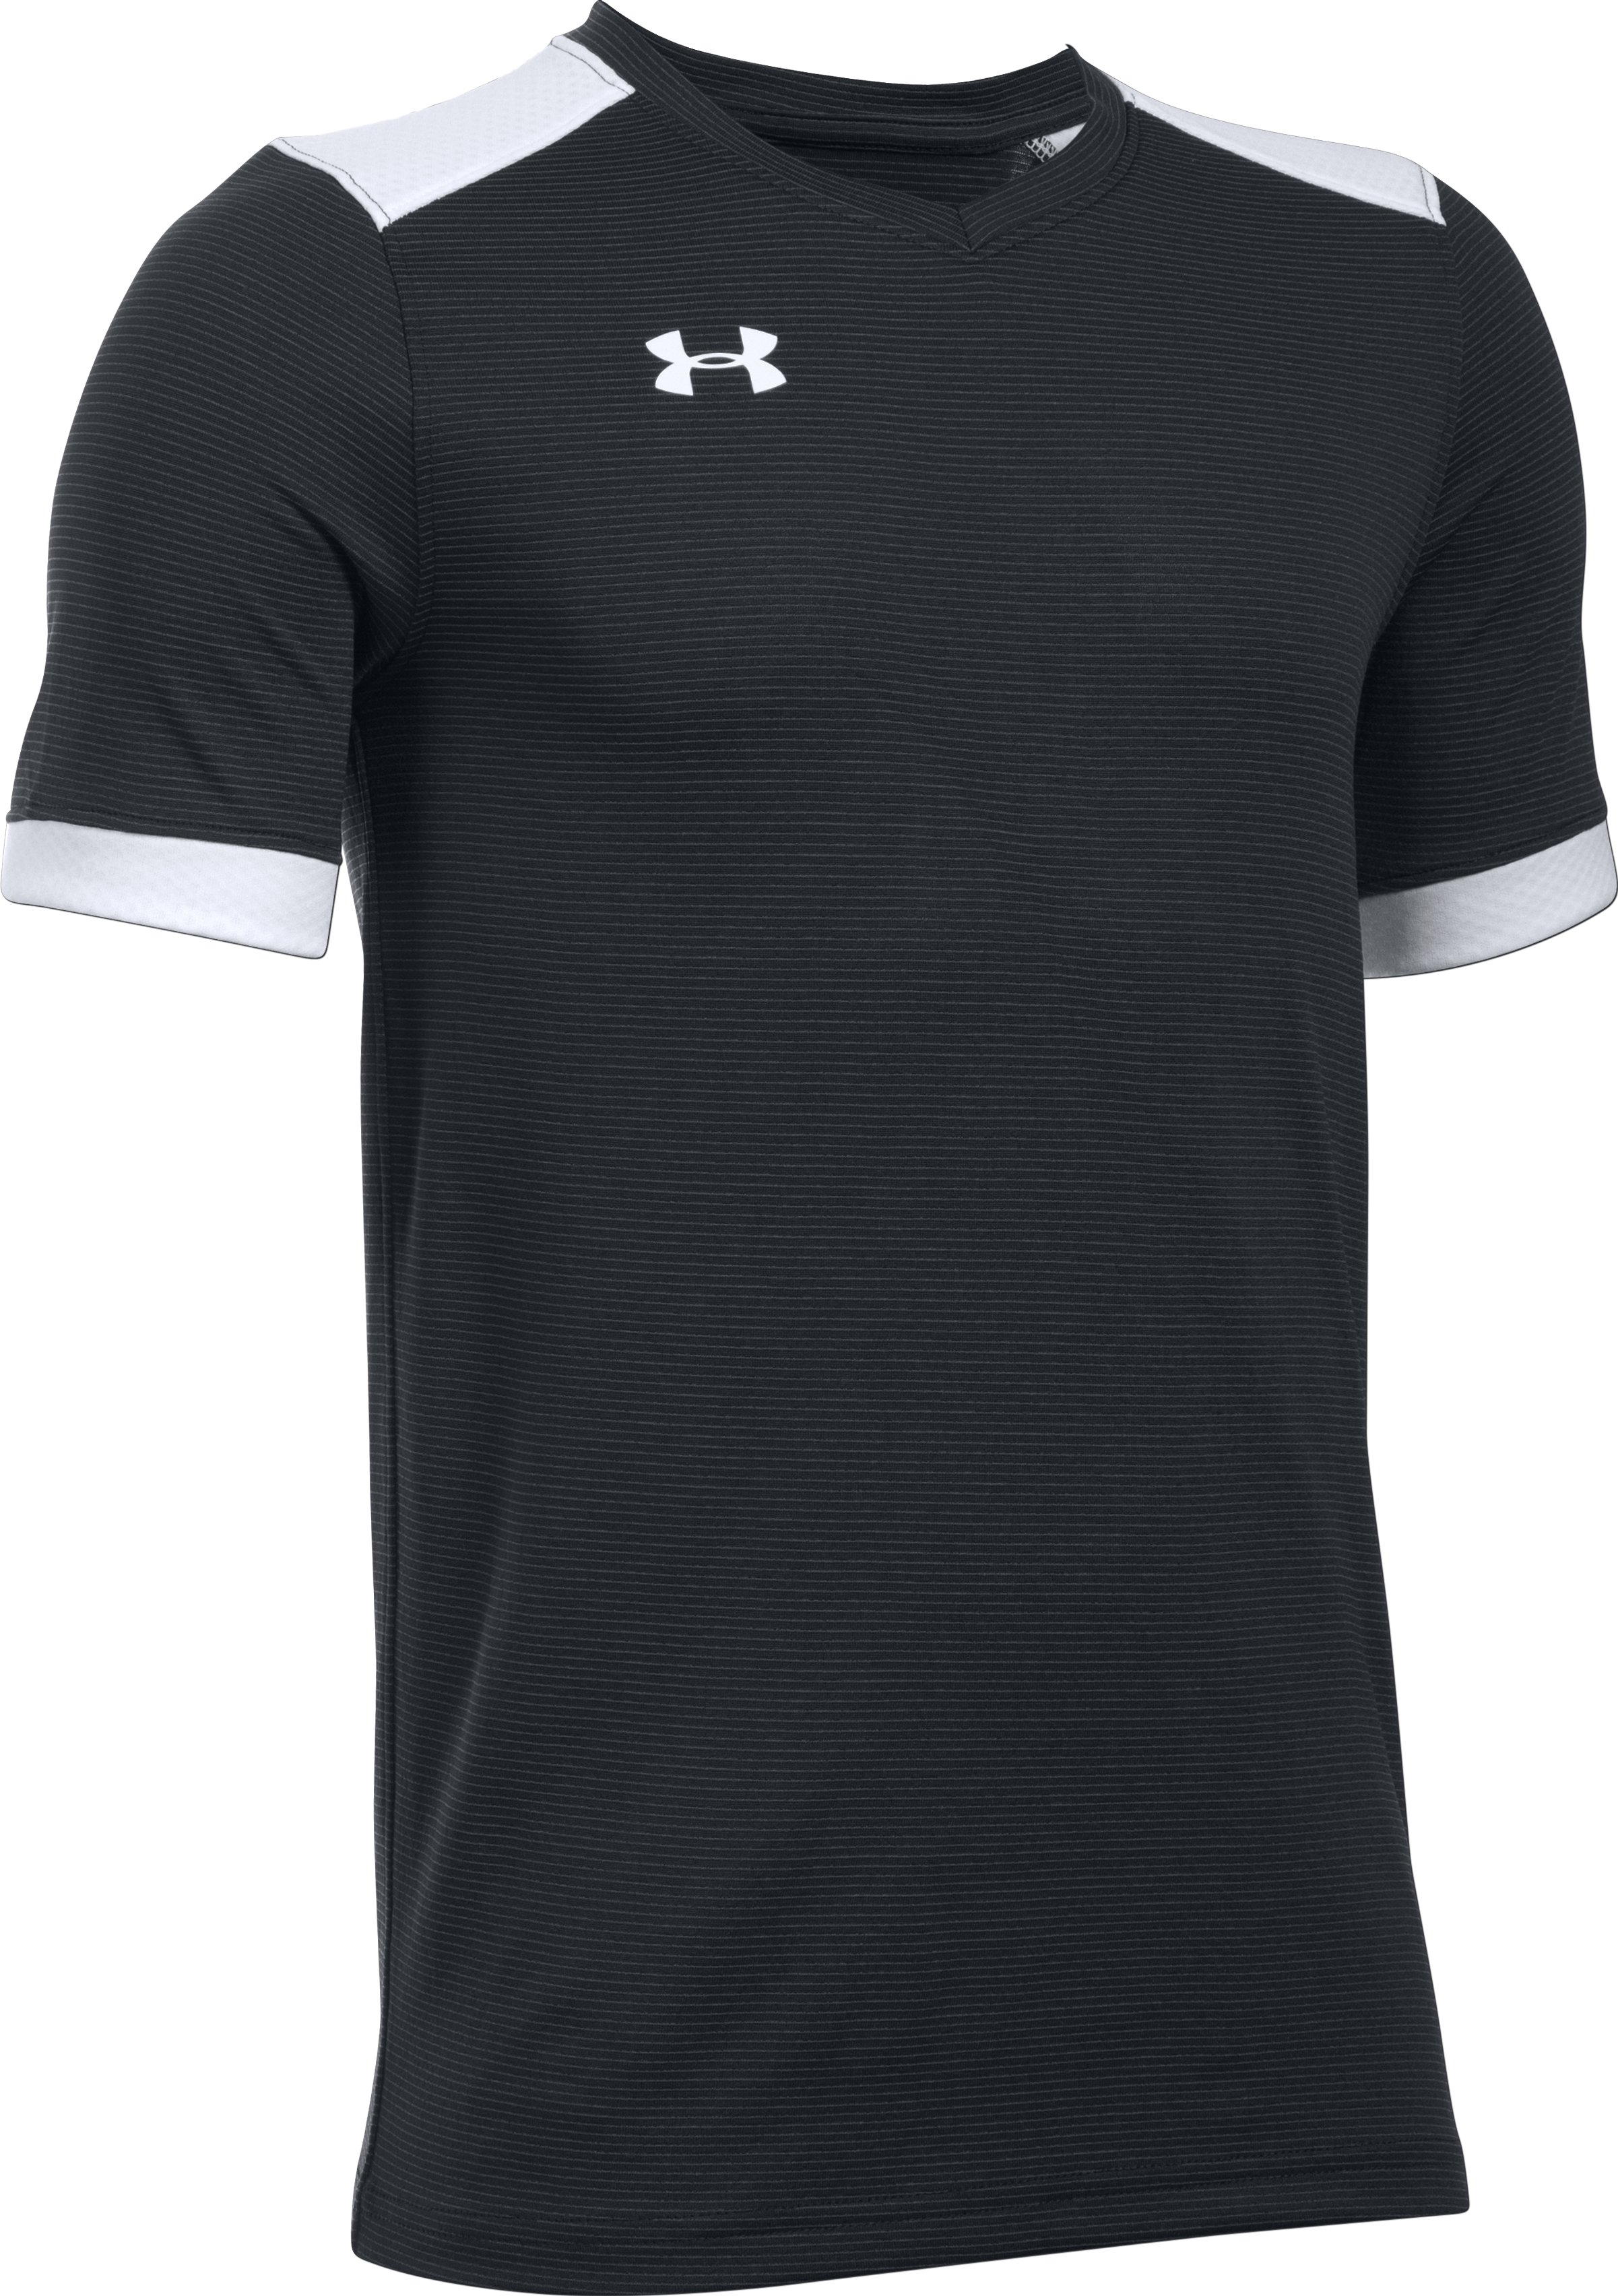 Kids' UA Threadborne Match Jersey, Black